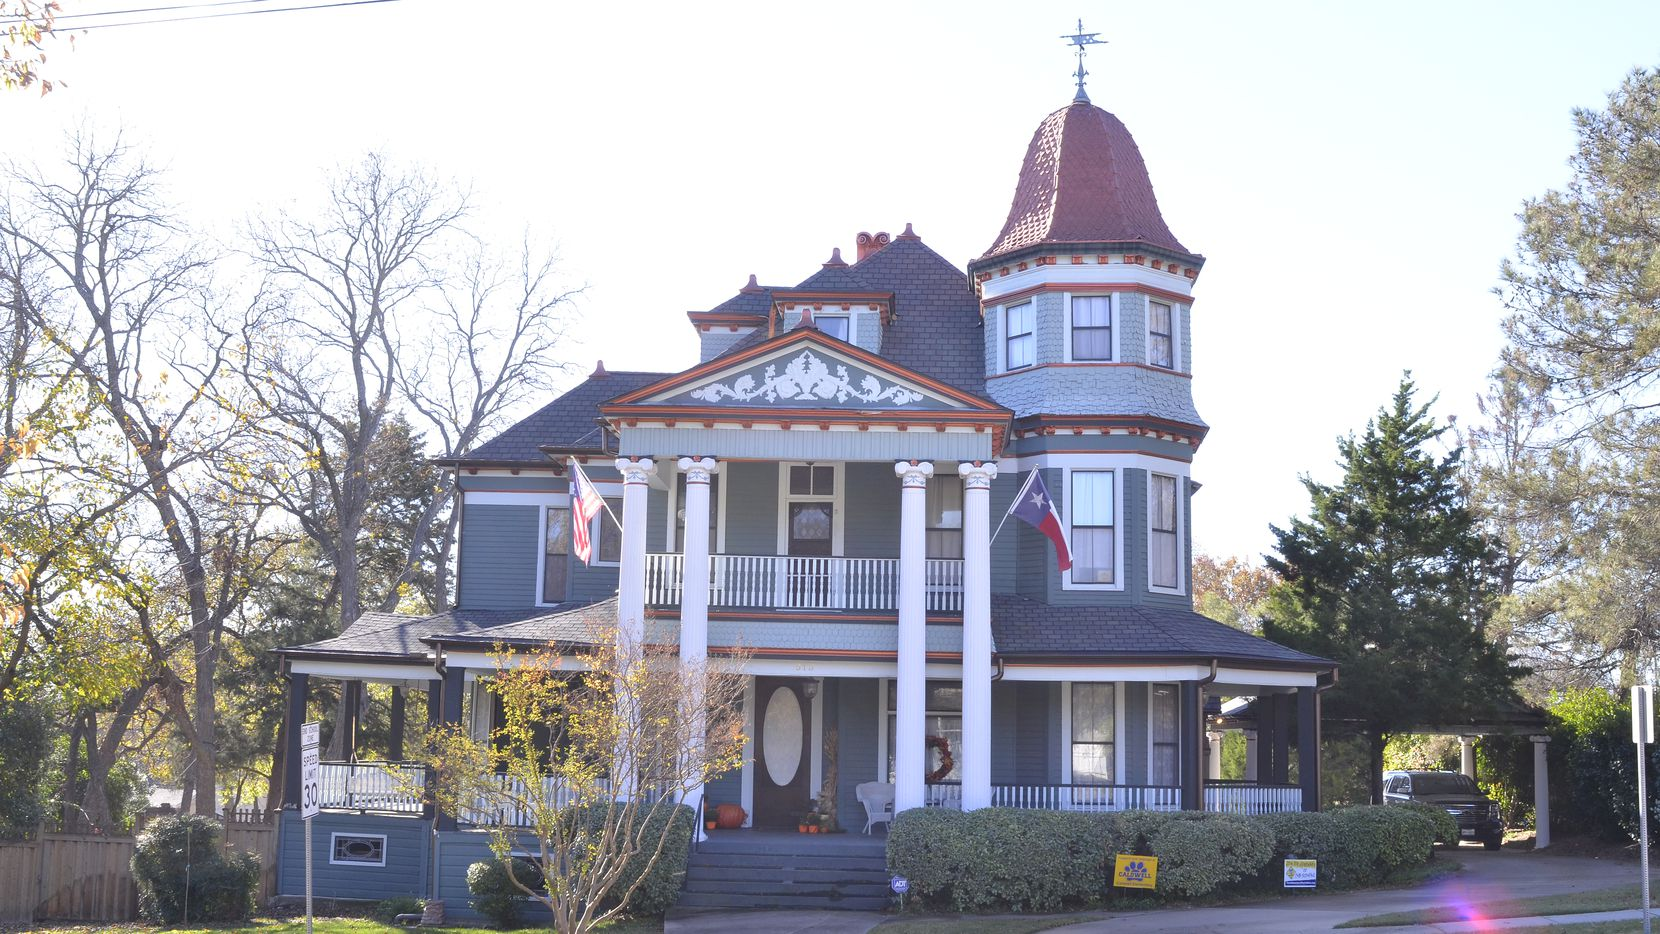 The L.A. Scott House, located at 513 W. Louisiana St., was built in 1880 and is a combination of Queen Anne and Classic Revival-style architecture.